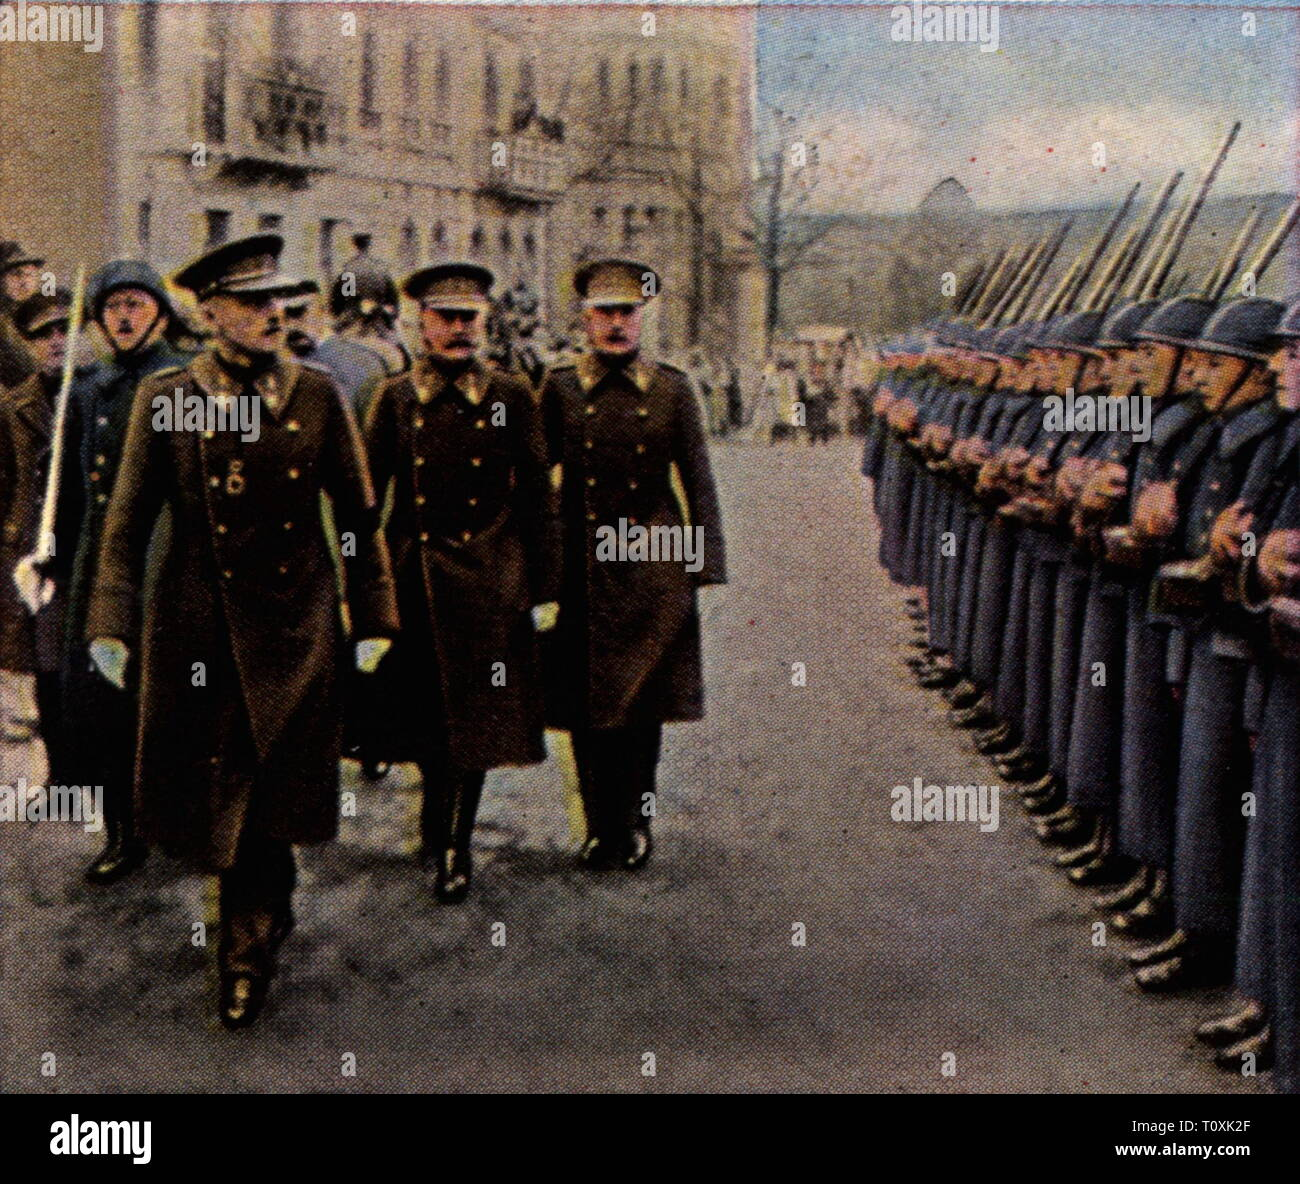 """Allied Occupation of the Rhineland 1918 - 1930, parade of Belgian troops in Aachen, January 1927, coloured photograph, cigarette card, series """"Die Nachkriegszeit"""", 1935, occupations, Rhineland, occupation, occupying power, occupying powers, Belgium, military, army, armies, officers, officer, soldiers, soldier, people, Prussia, Rhine Province, North Rhine-Westphalia, North-Rhine, Rhine, Westphalia, Nordrhein-Westfalen, Nordrhein-Westphalen, Germany, German Reich, Weimar Republic, 1920s, 20th century, parade, parades, coloured, colored, post war pe, Additional-Rights-Clearance-Info-Not-Available Stock Photo"""